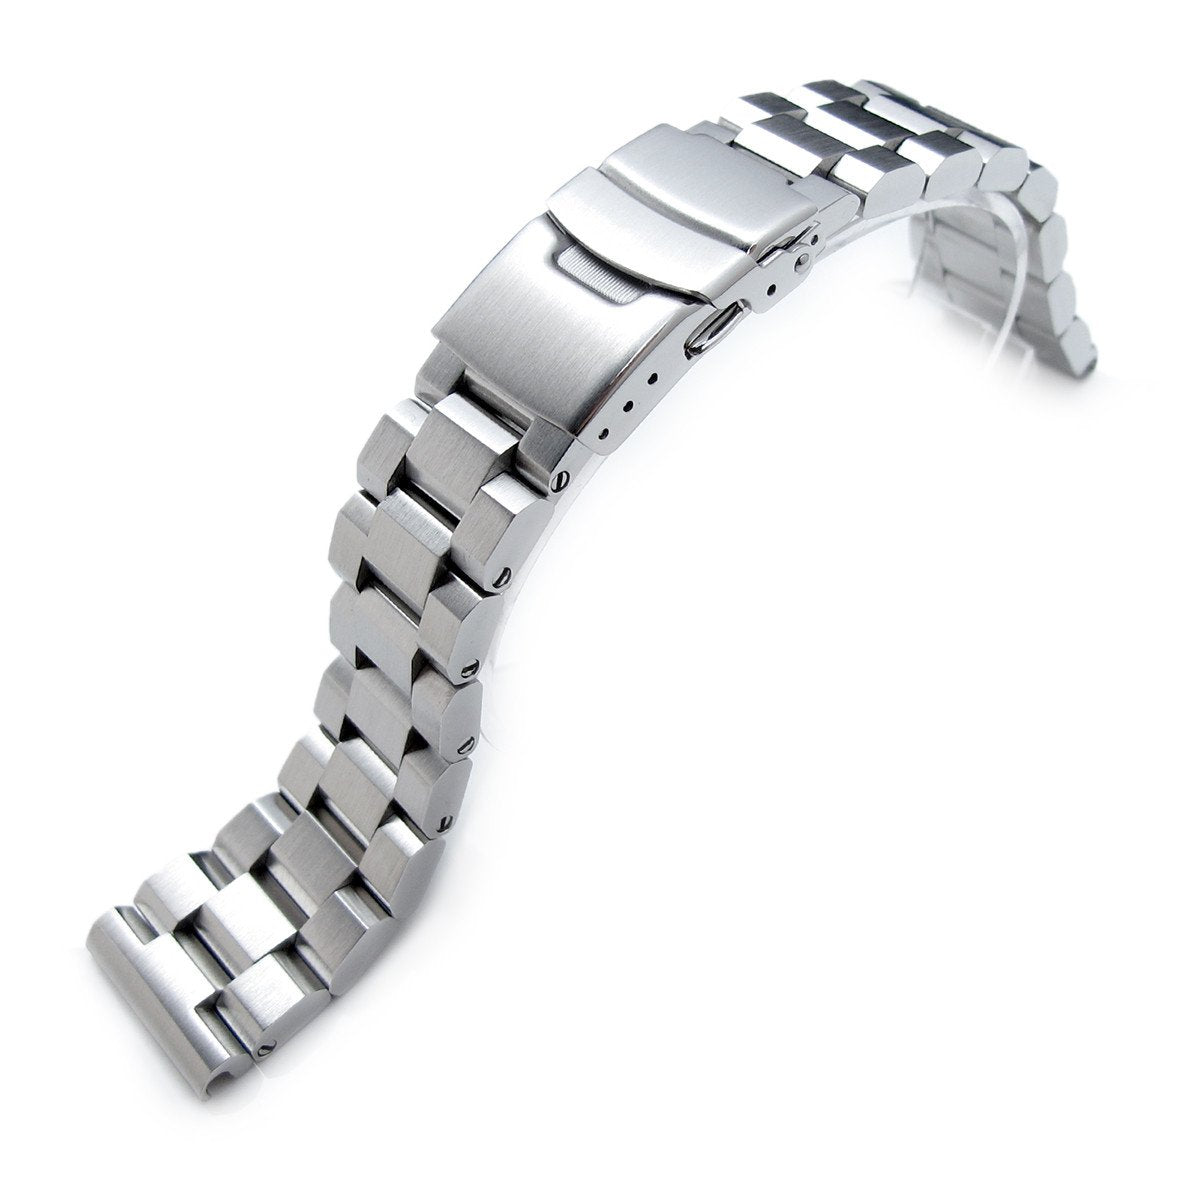 22mm Hexad 316L Stainless Steel Watch Band Straight End Lug Diver Clasp Brushed Strapcode Watch Bands